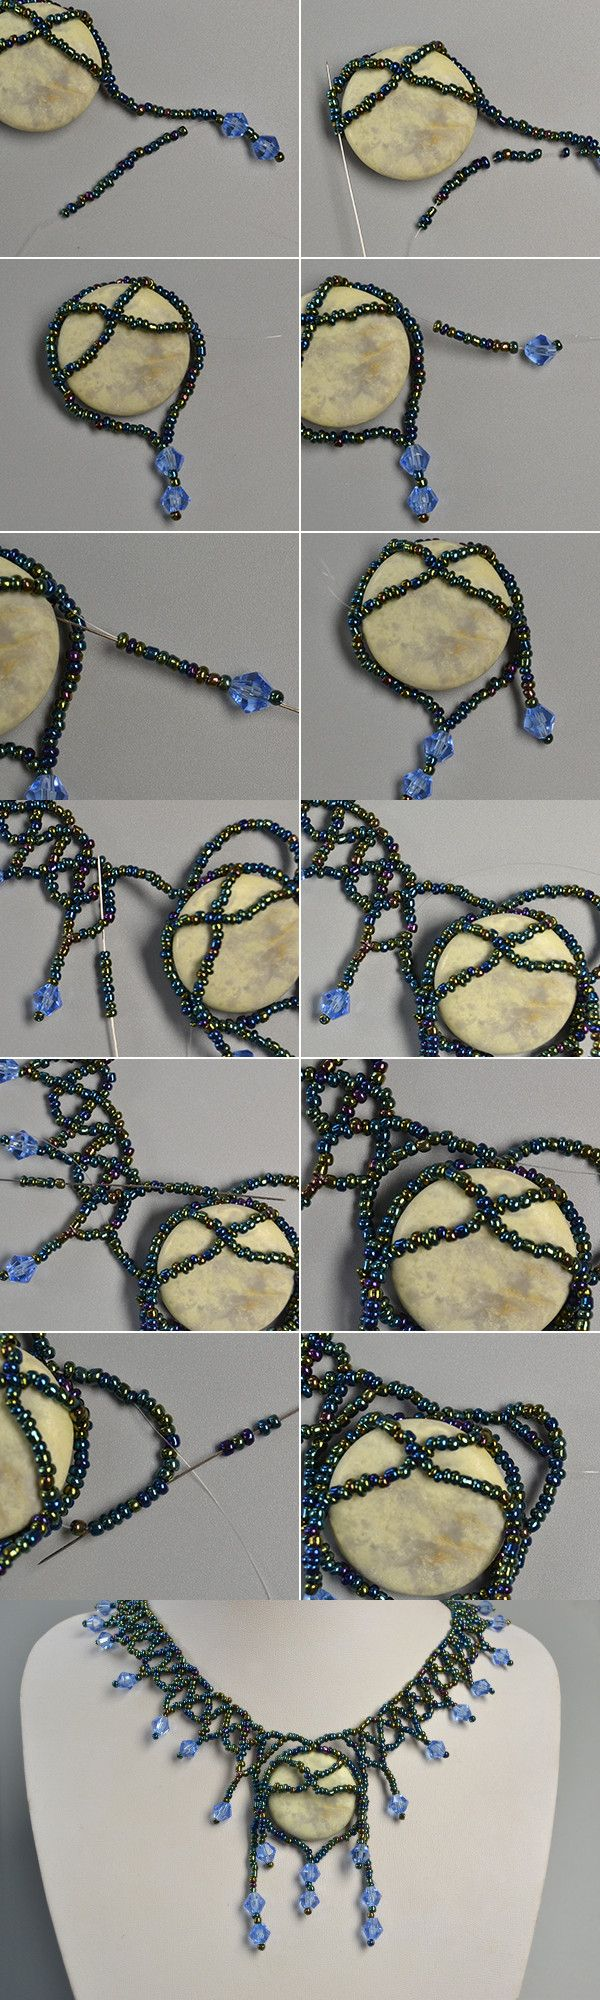 like the stone pendant necklace? LC.Pandahall.com will publish the tutorial.